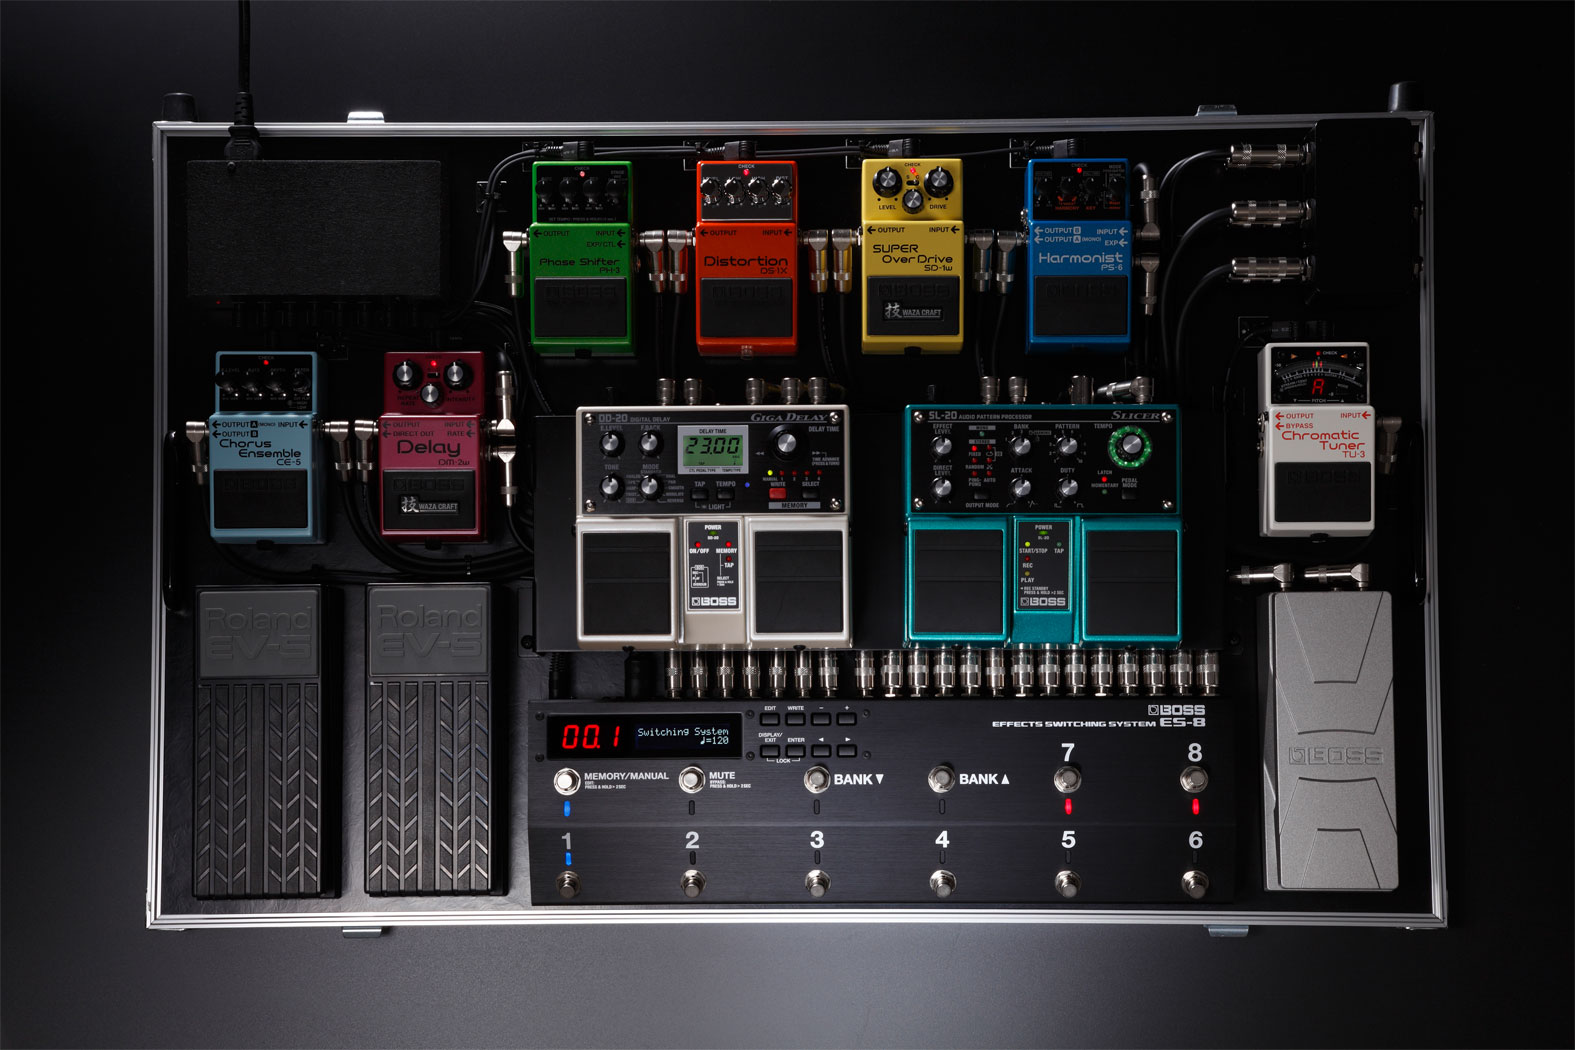 Boss Es 8 Effects Switching System Pedalboard Wiring Diagram